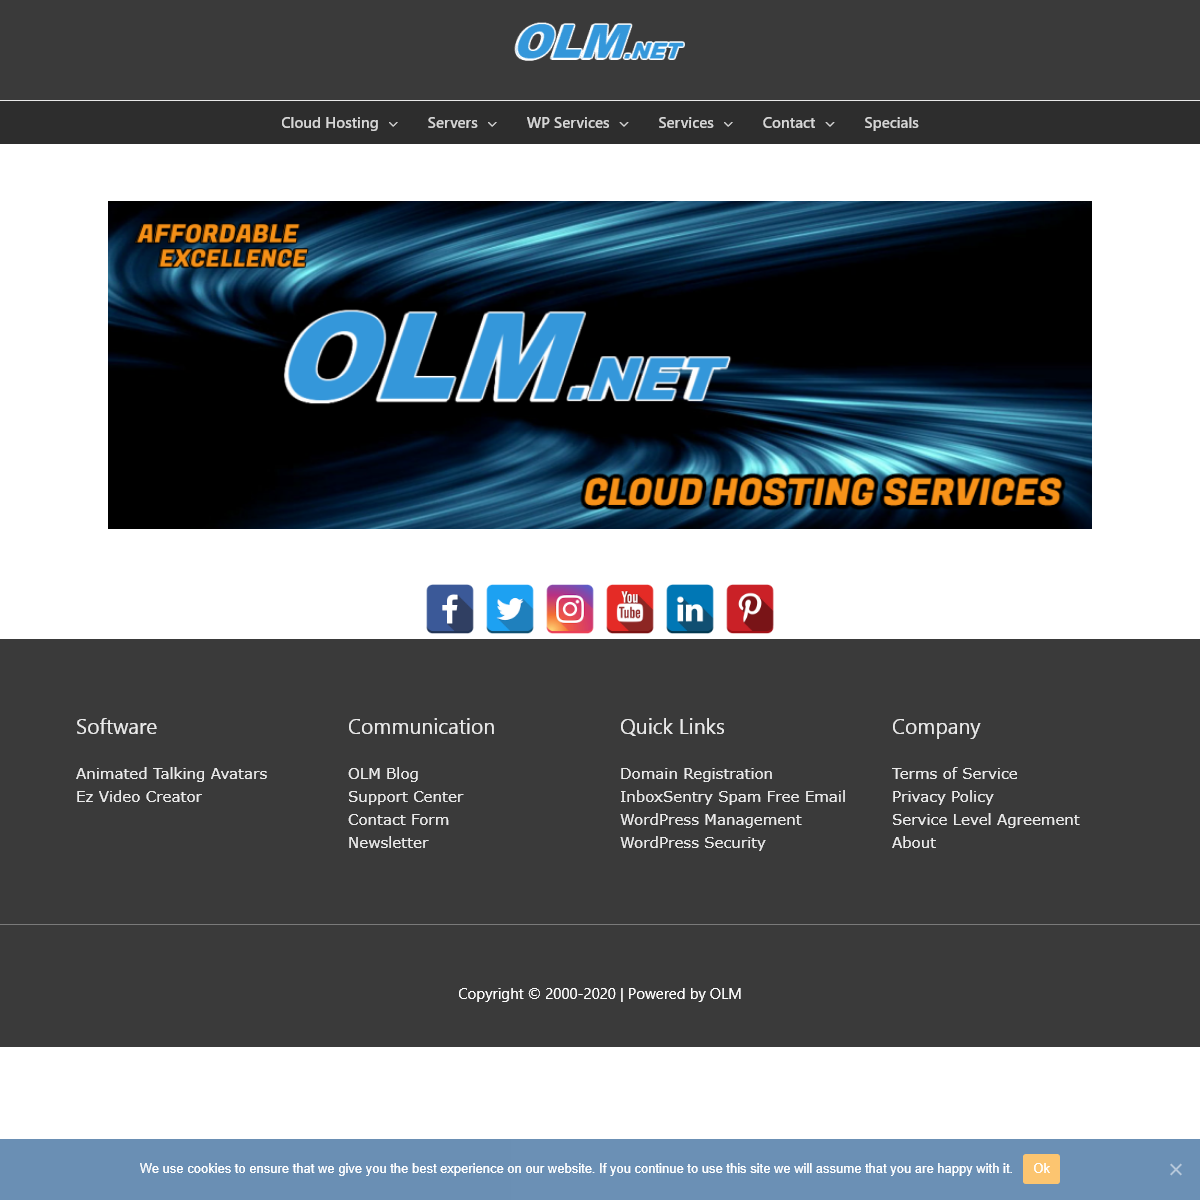 OLM.net Cloud Hosting Services, Its never been so easy!